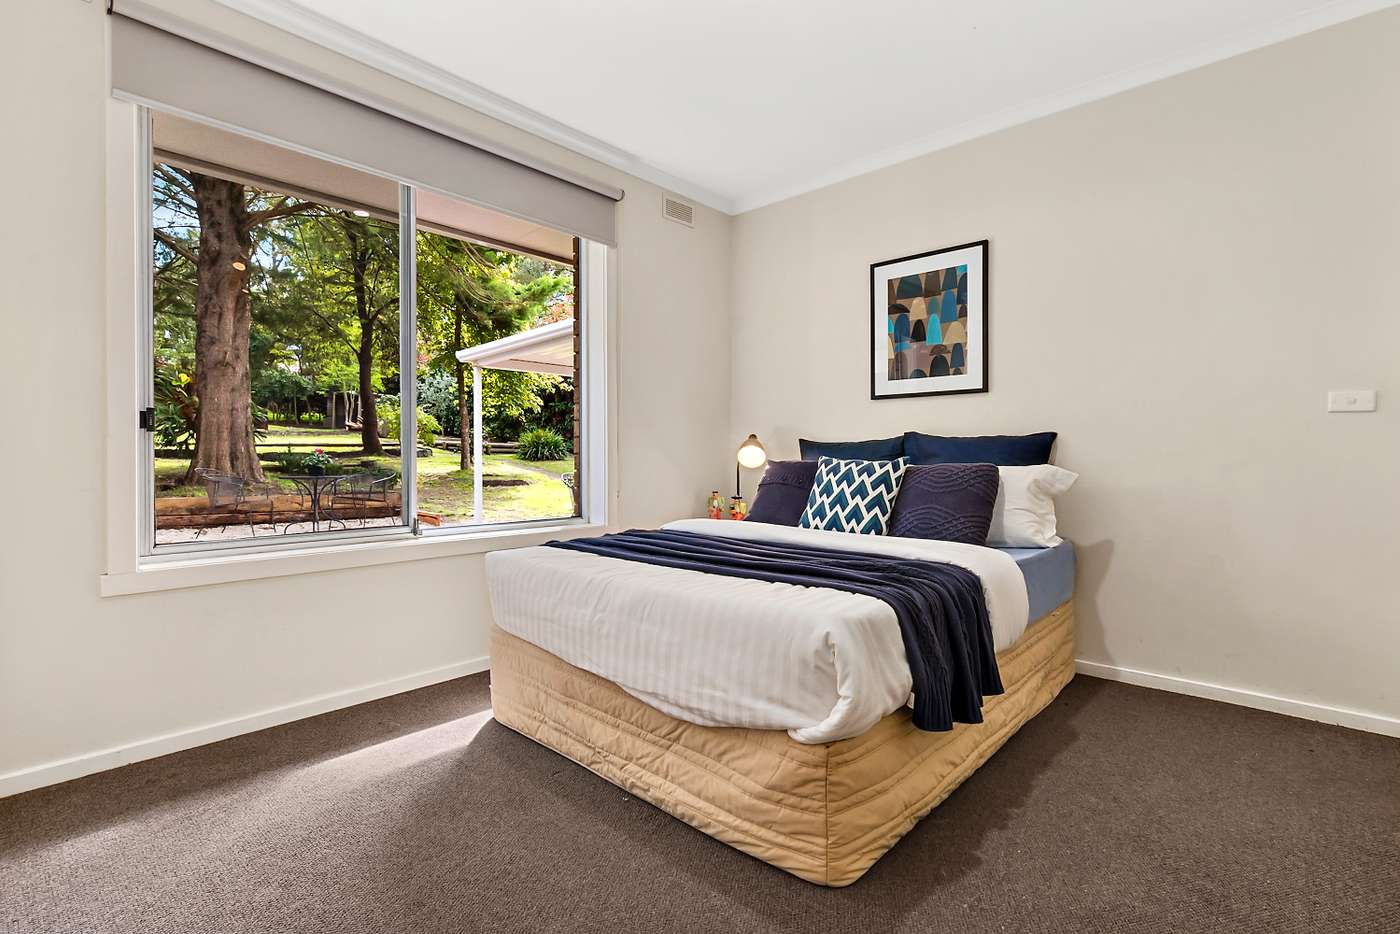 Sixth view of Homely house listing, 22 Corks Road, Macedon VIC 3440